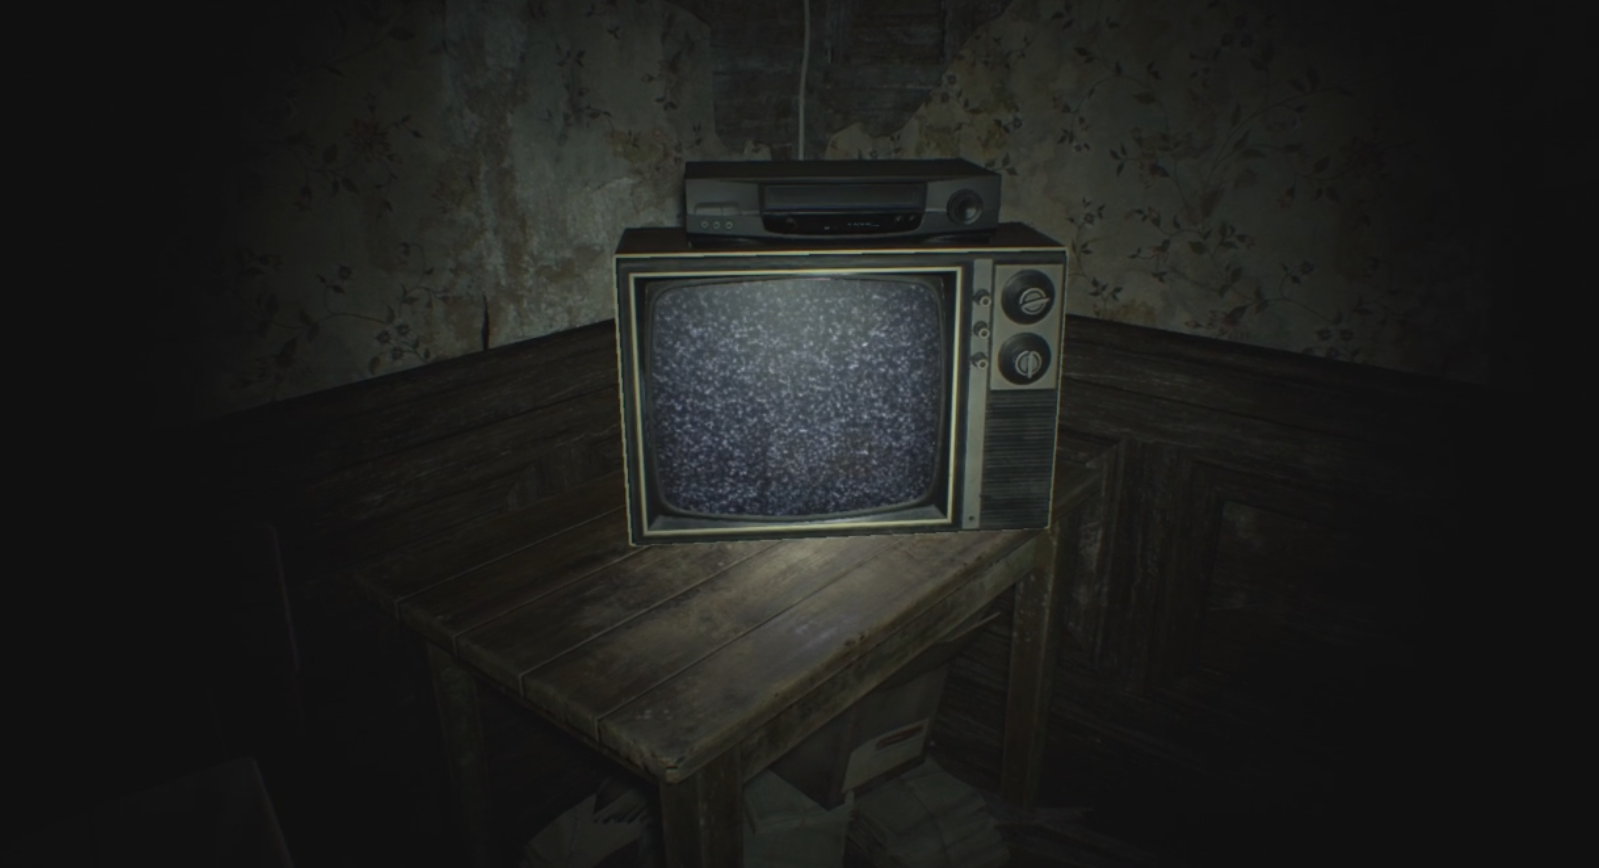 txywtshwjjunsla2ut8t the mystery of what the resident evil 7 teaser hides kotaku RE7 Mia at bayanpartner.co